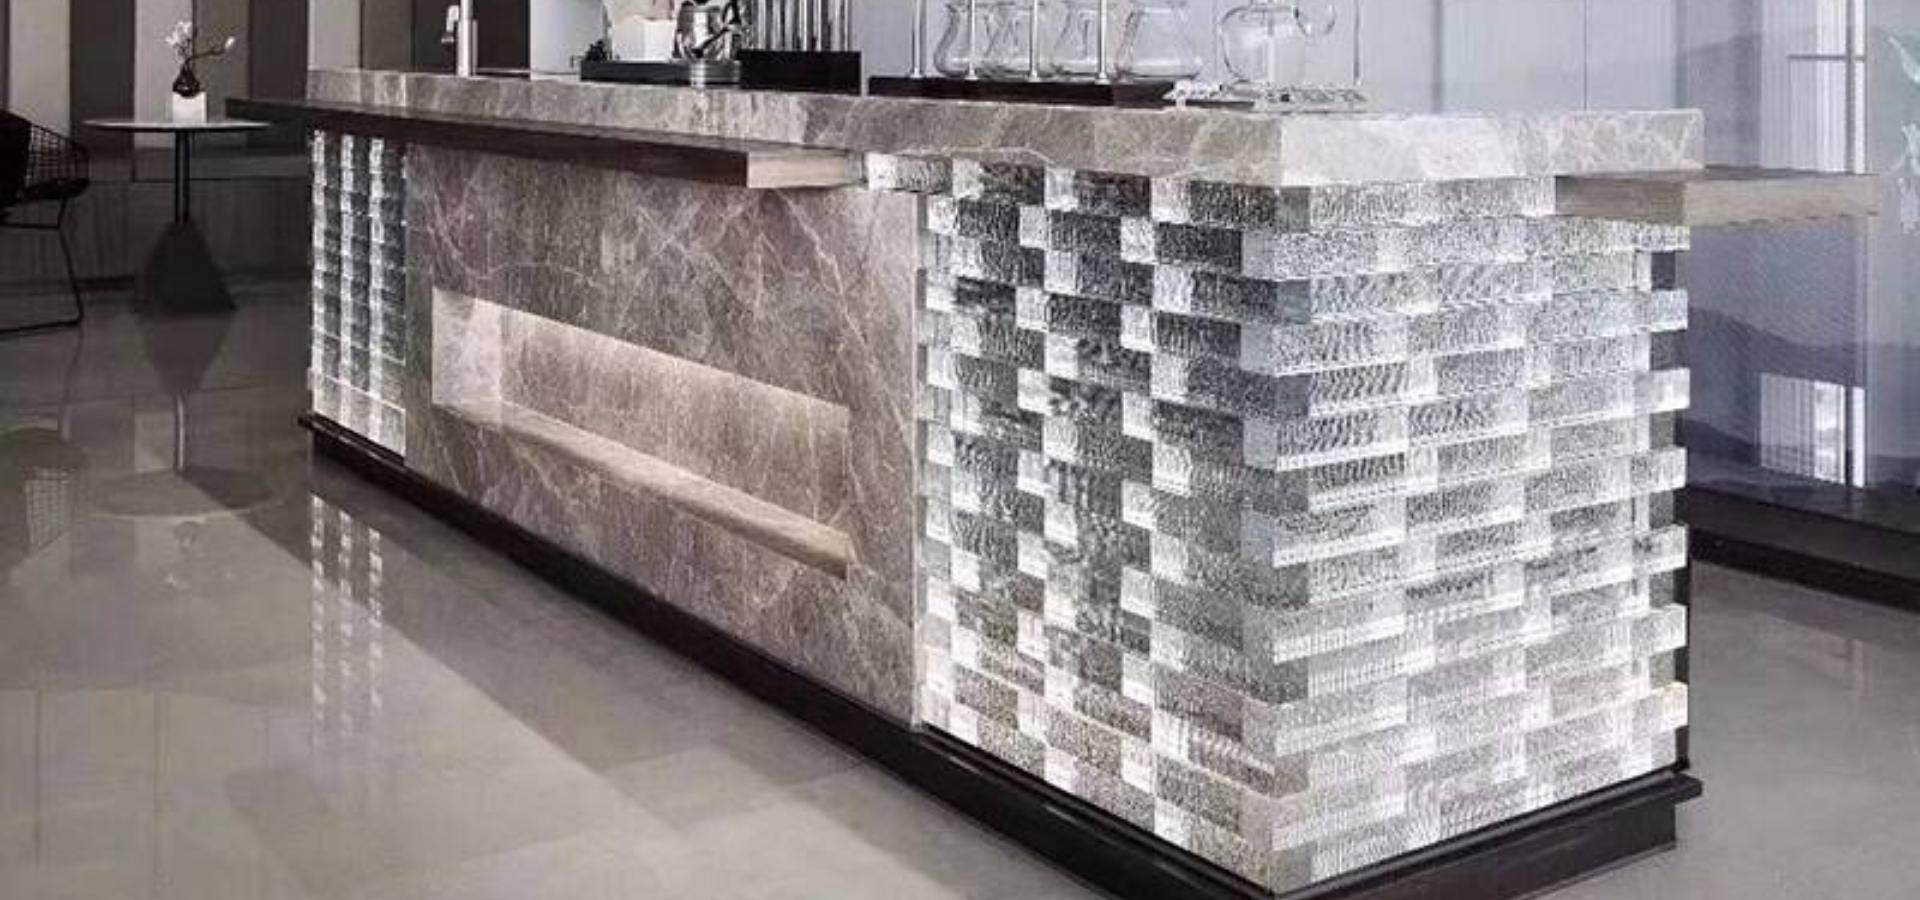 Glass bricks withh bubbles for support